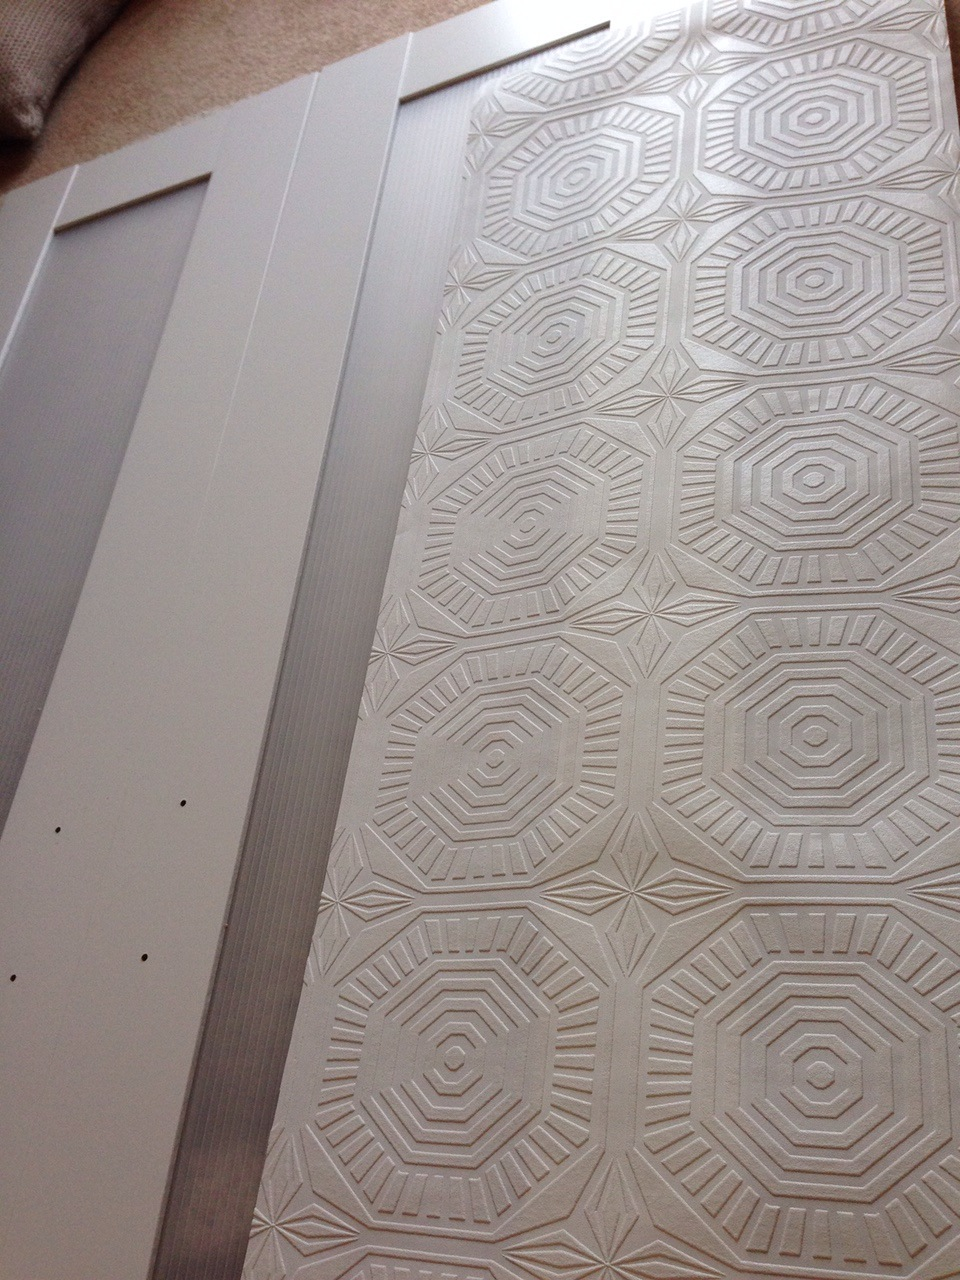 Once I Cut The Wallpaper Strip To Size Applied One Coat Of Mod Podge Panel Then Carefully Placed Paper In Place